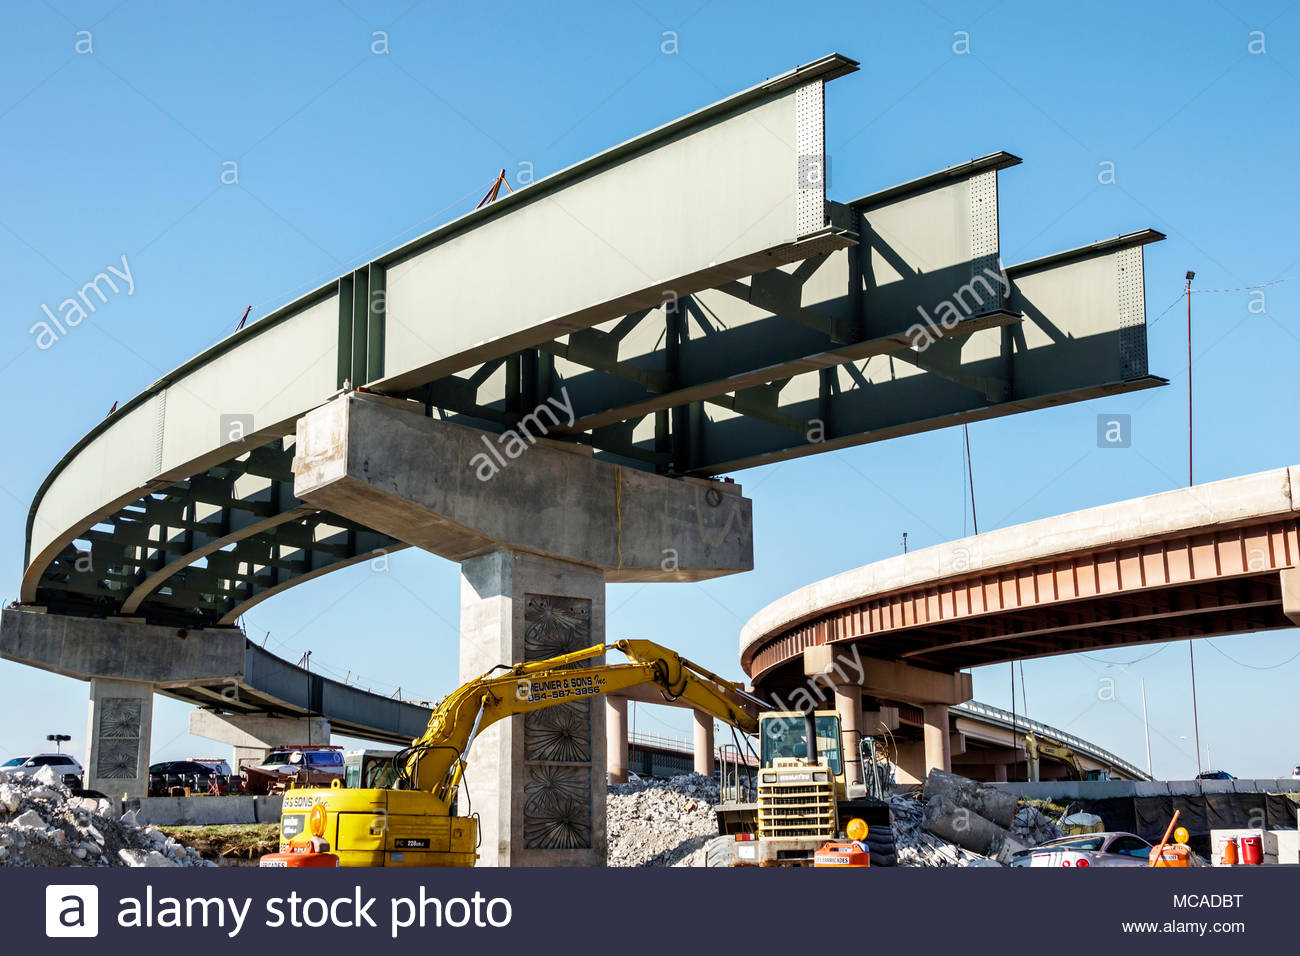 Florida Miami LeJeune Road roadway construction highway expressway flyover bridge overpass curve steel beams unfinished - Stock Image